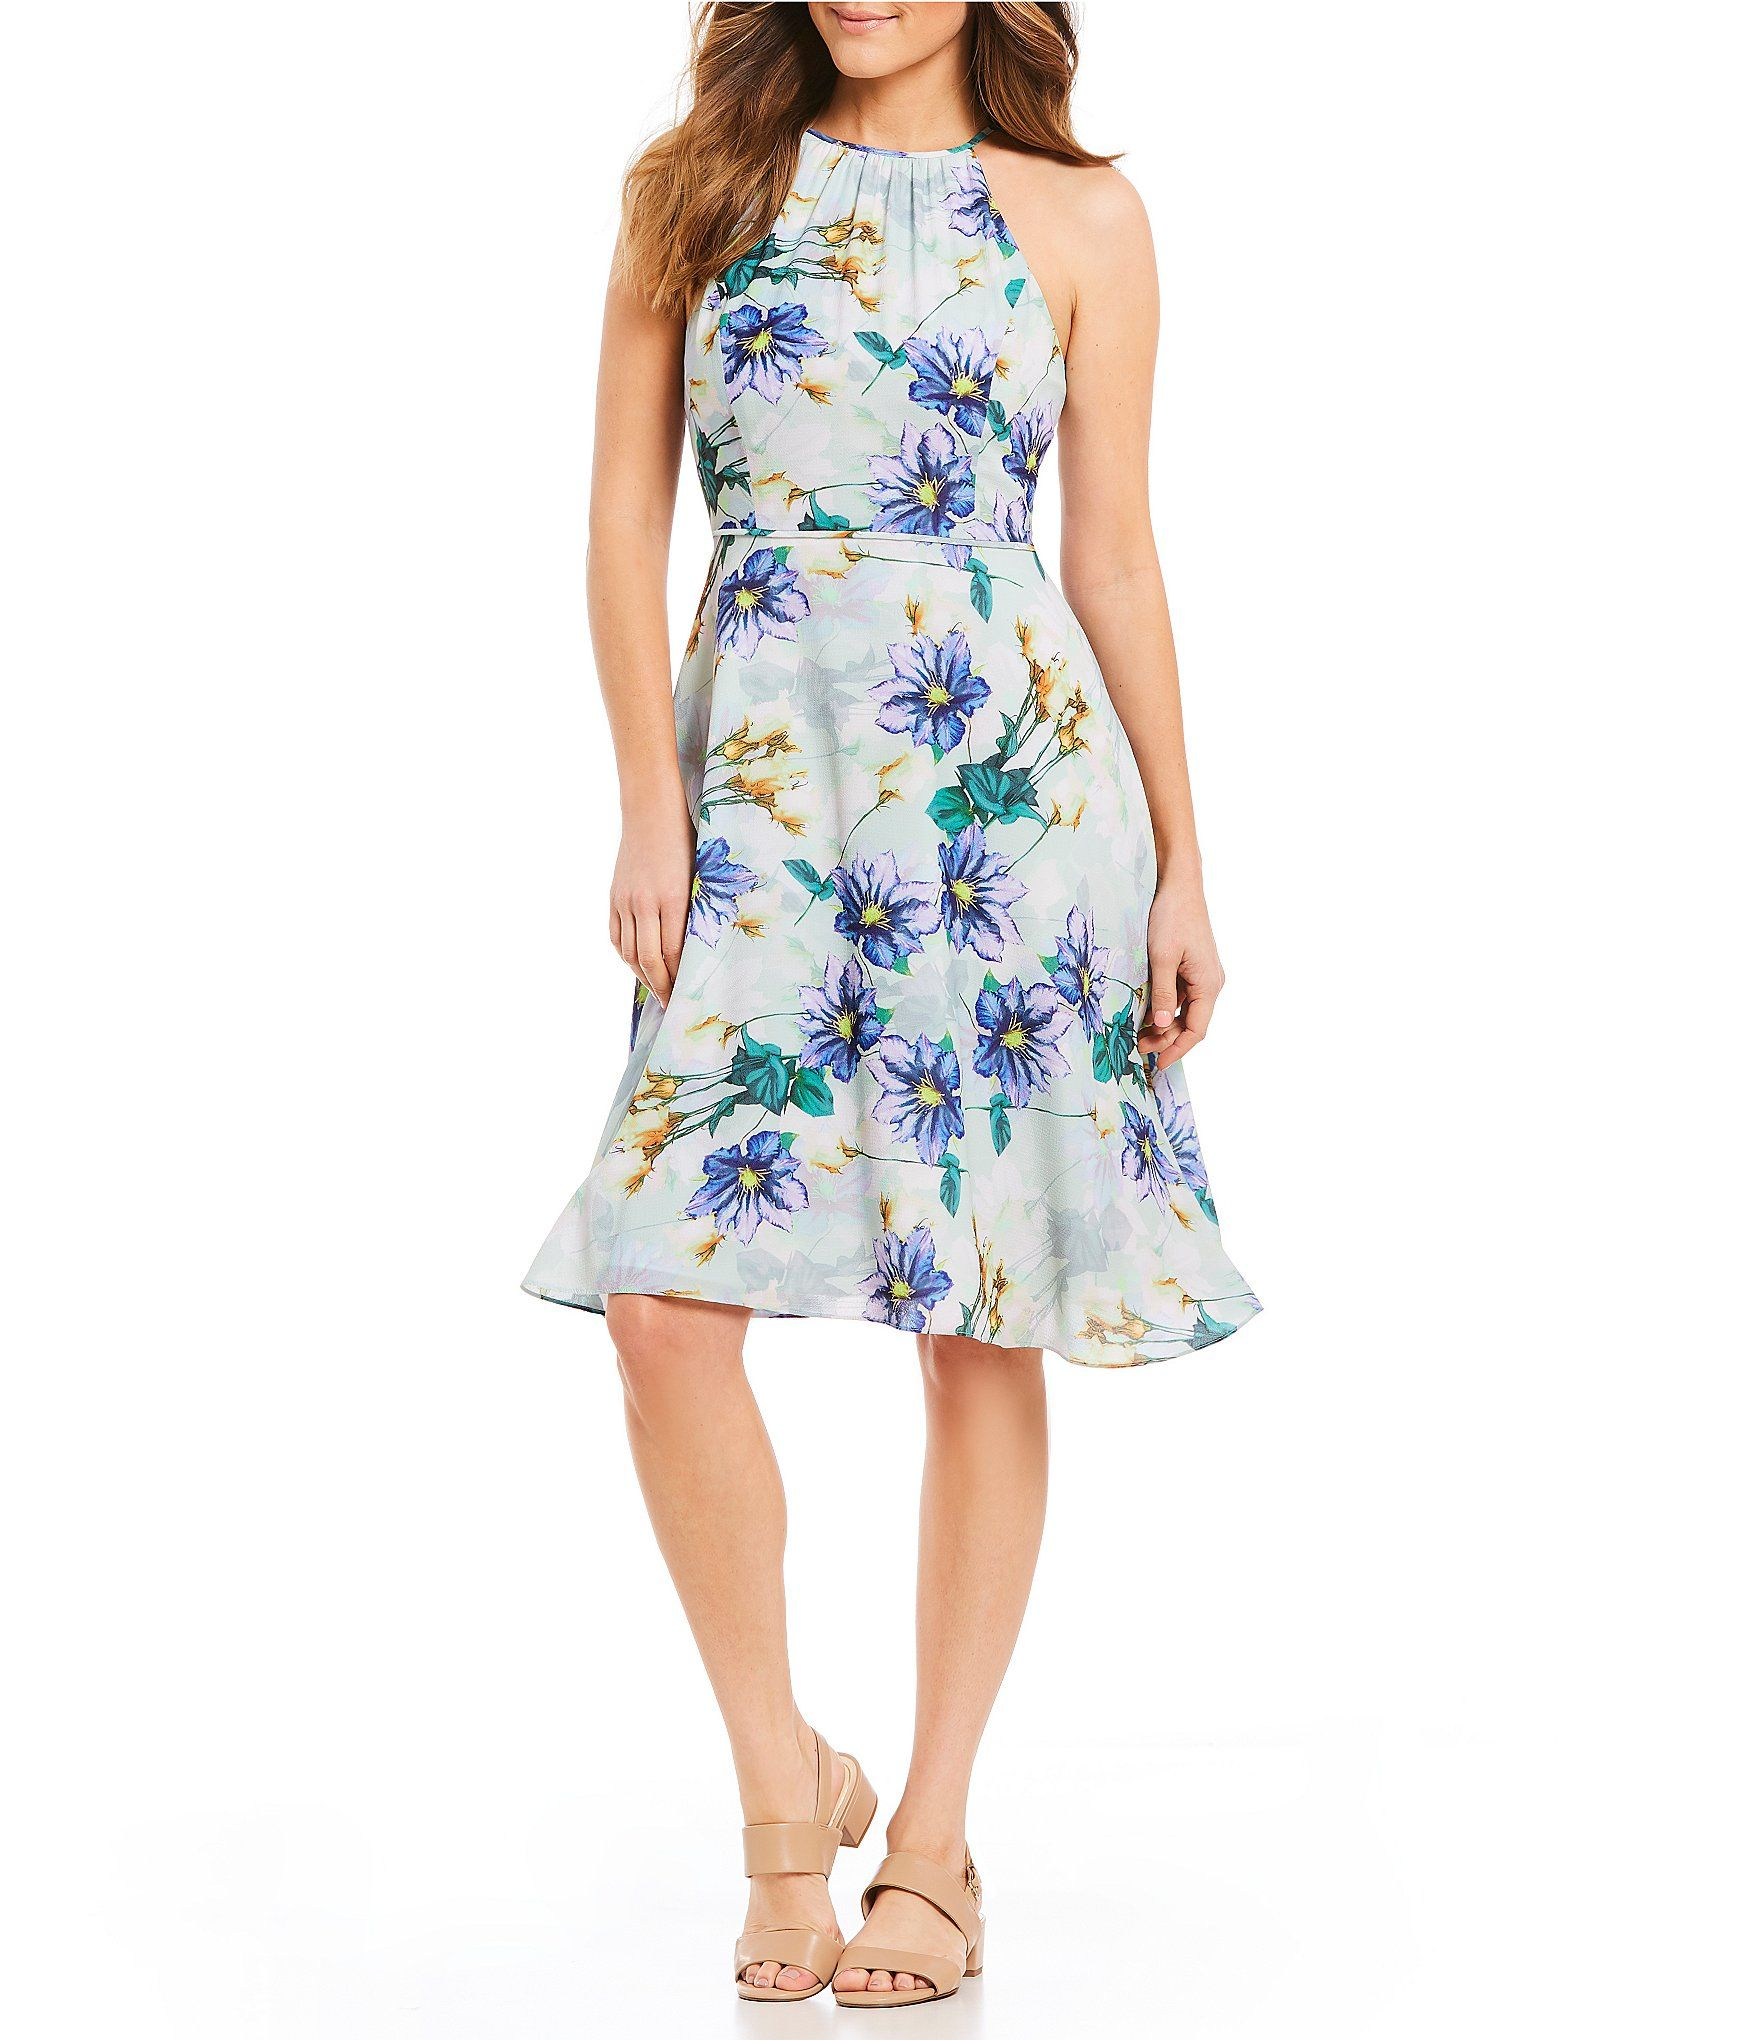 145486f1828 Shop for Alex Marie Thea Halter Floral Print Dress at Dillards.com. Visit  Dillards.com to find clothing